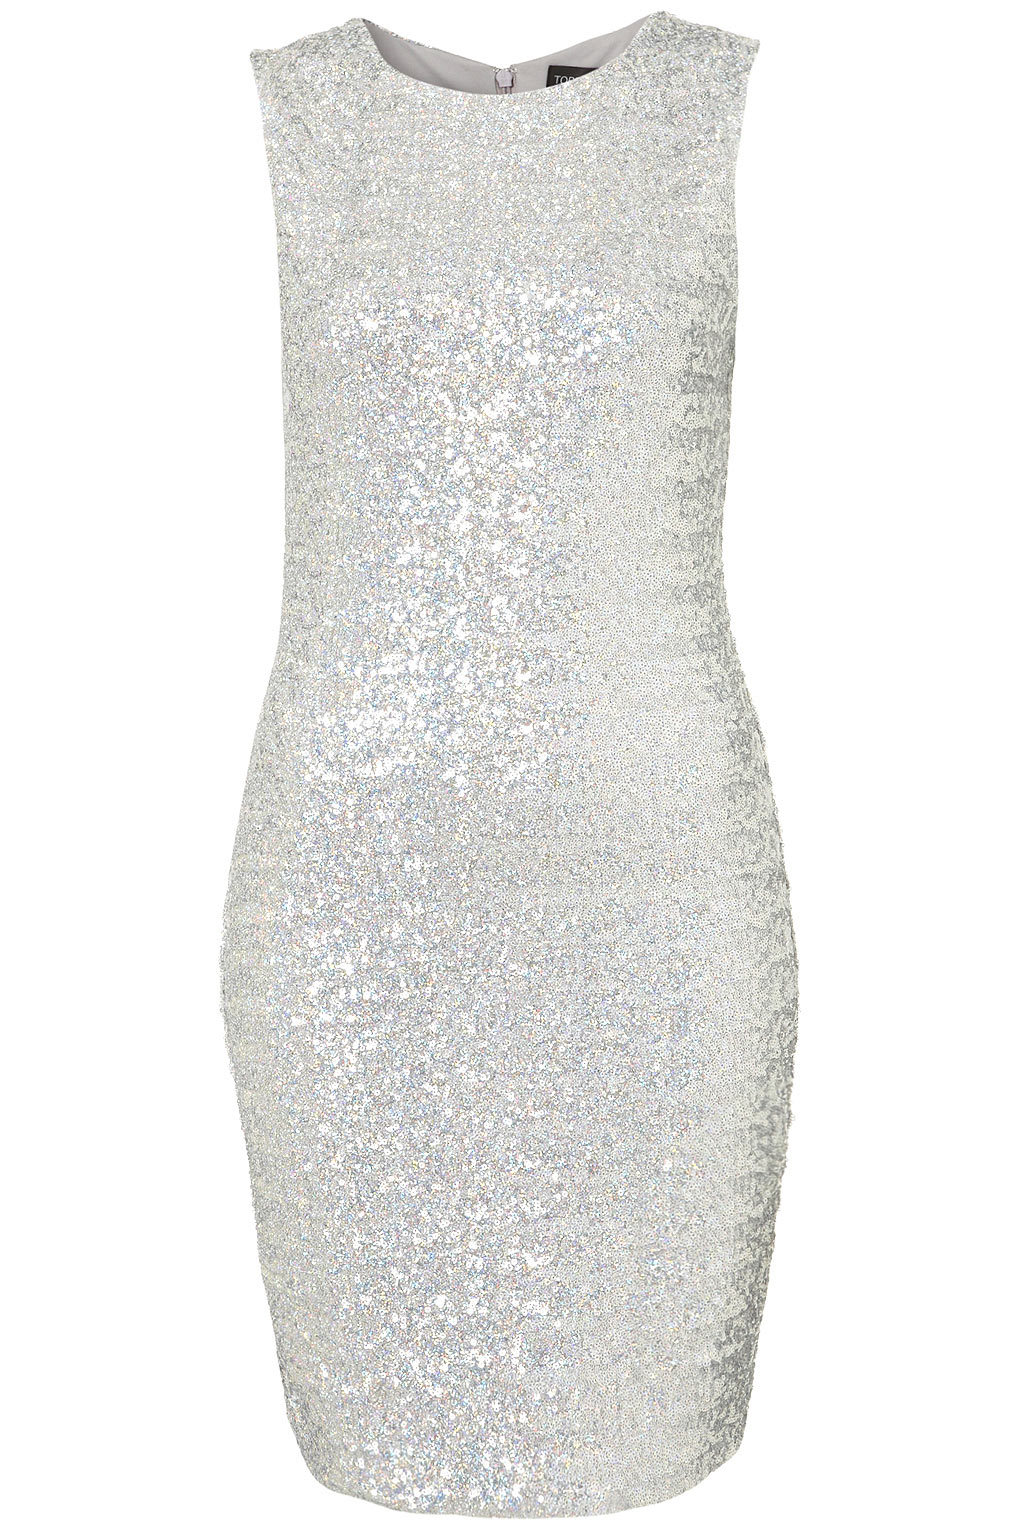 Sparkly-silver-little-white-wedding-reception-dress-high-neck.full